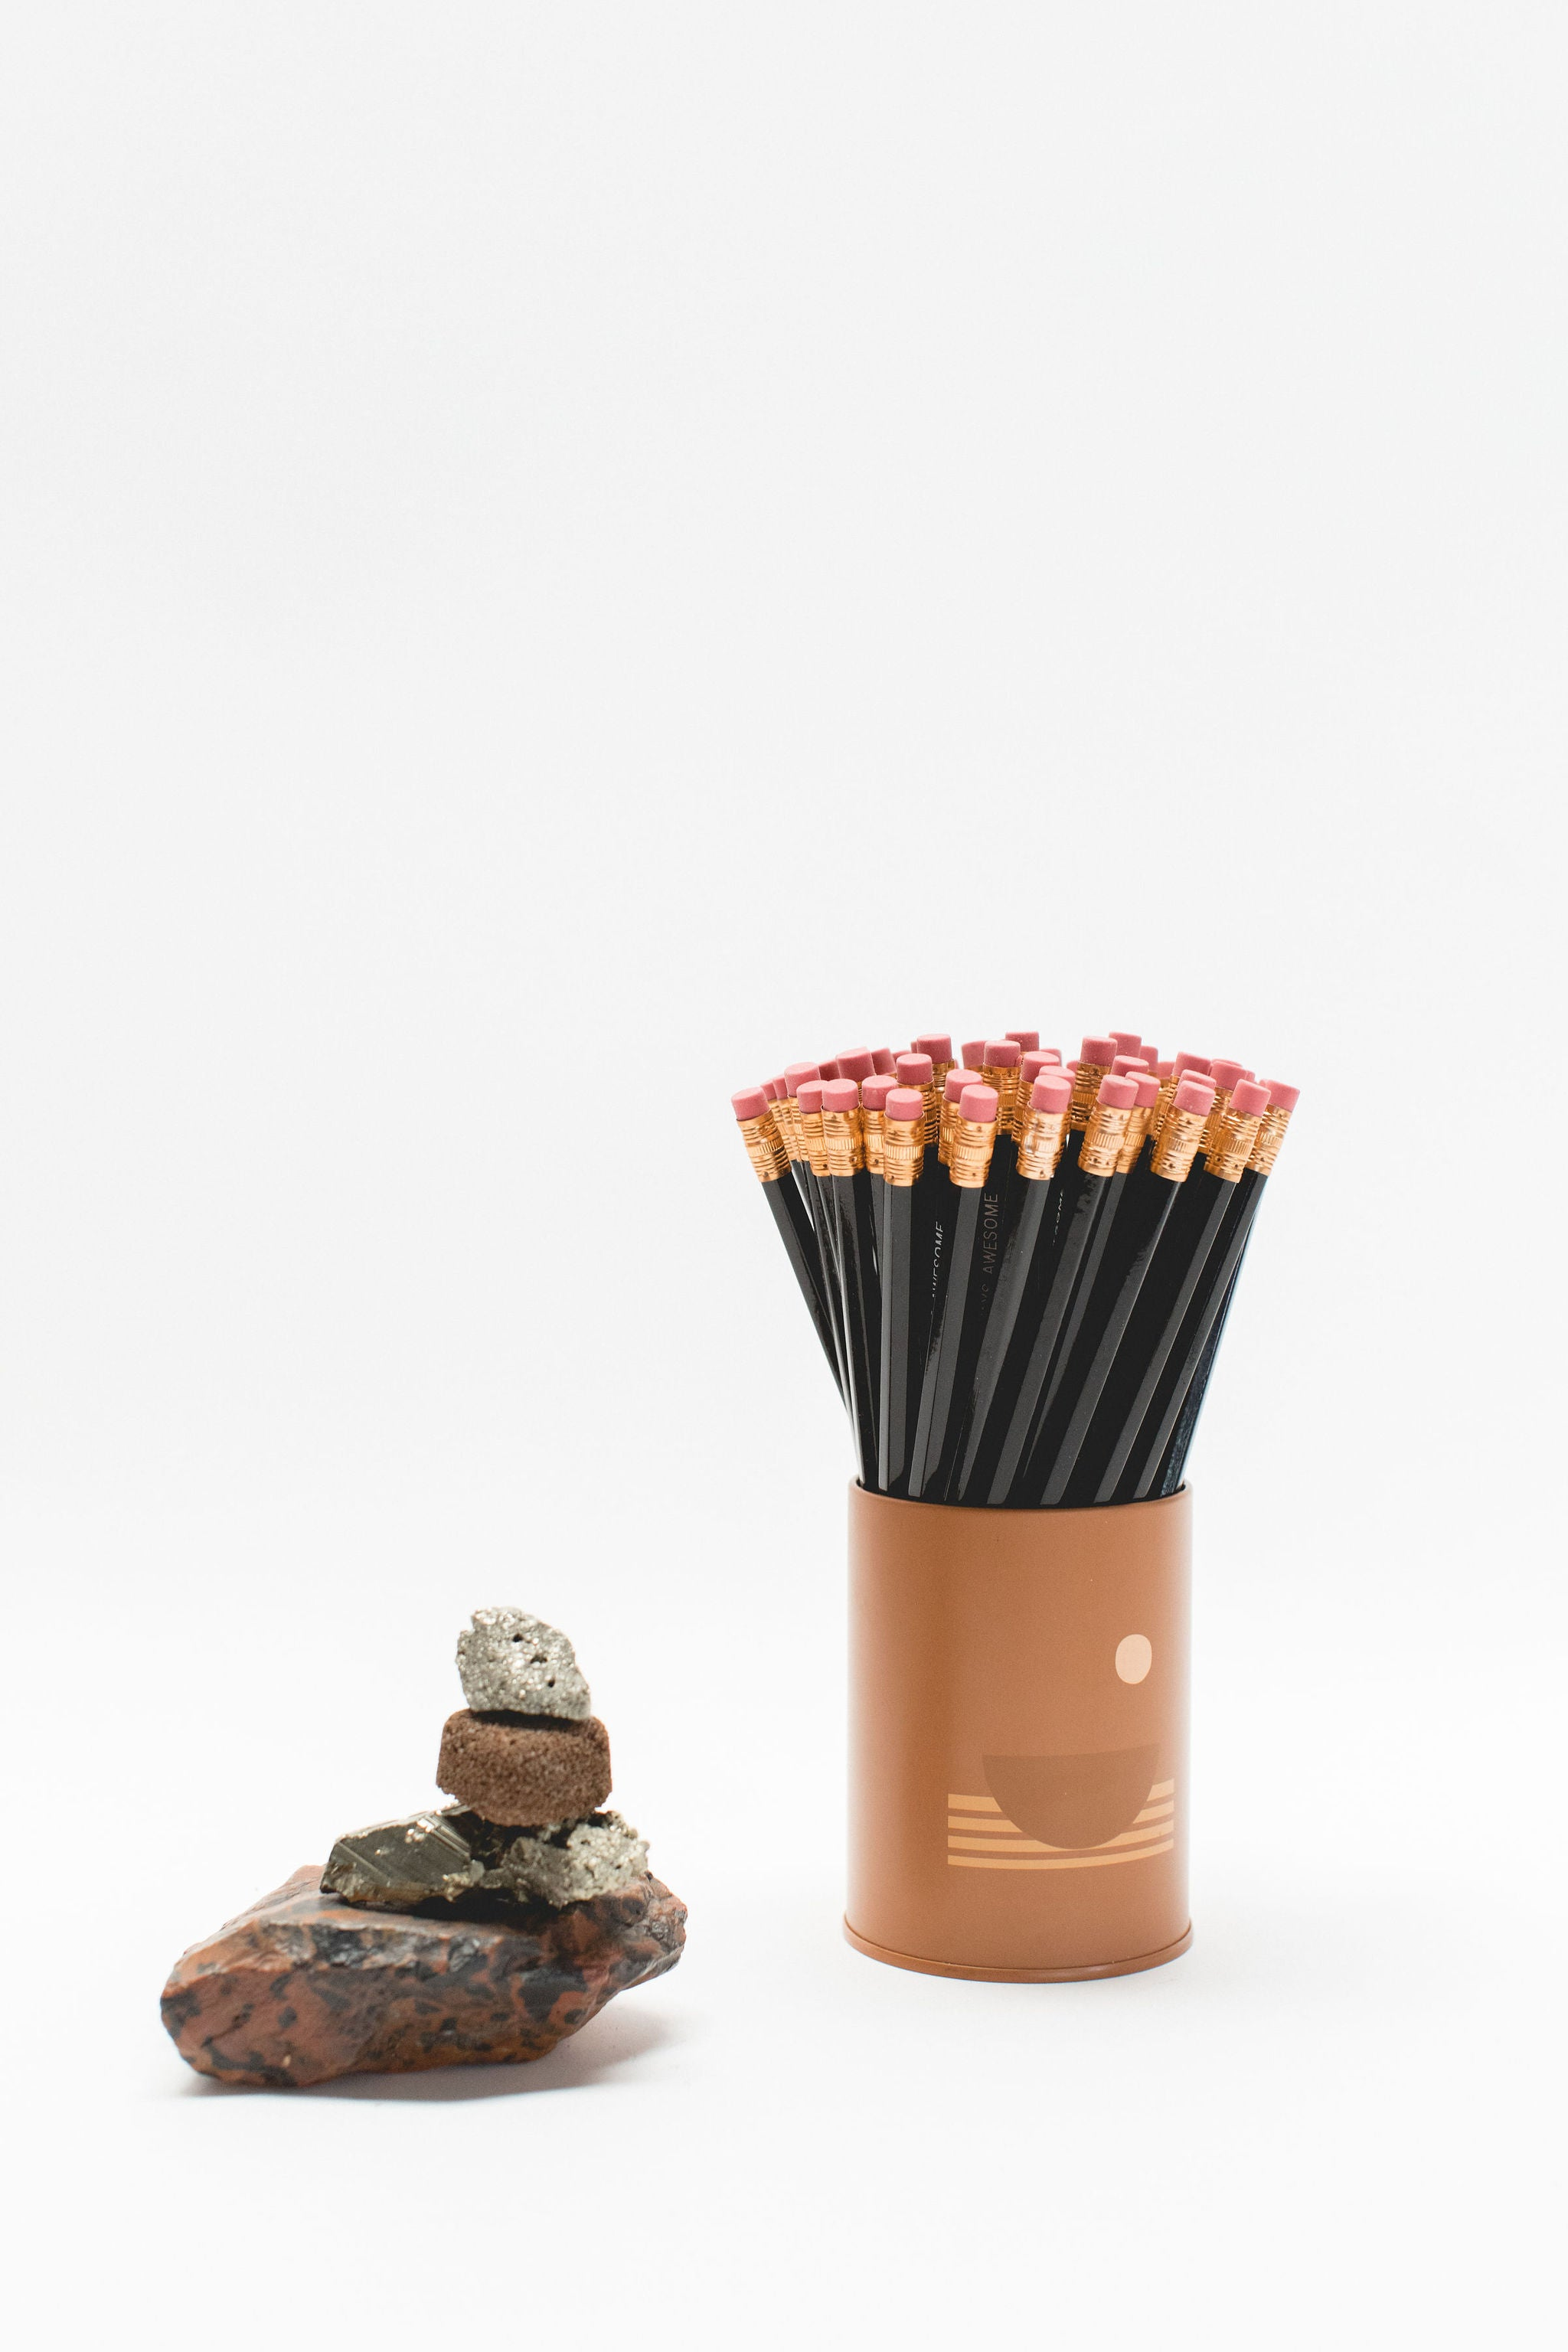 Candle-Turned-Pencil Holder